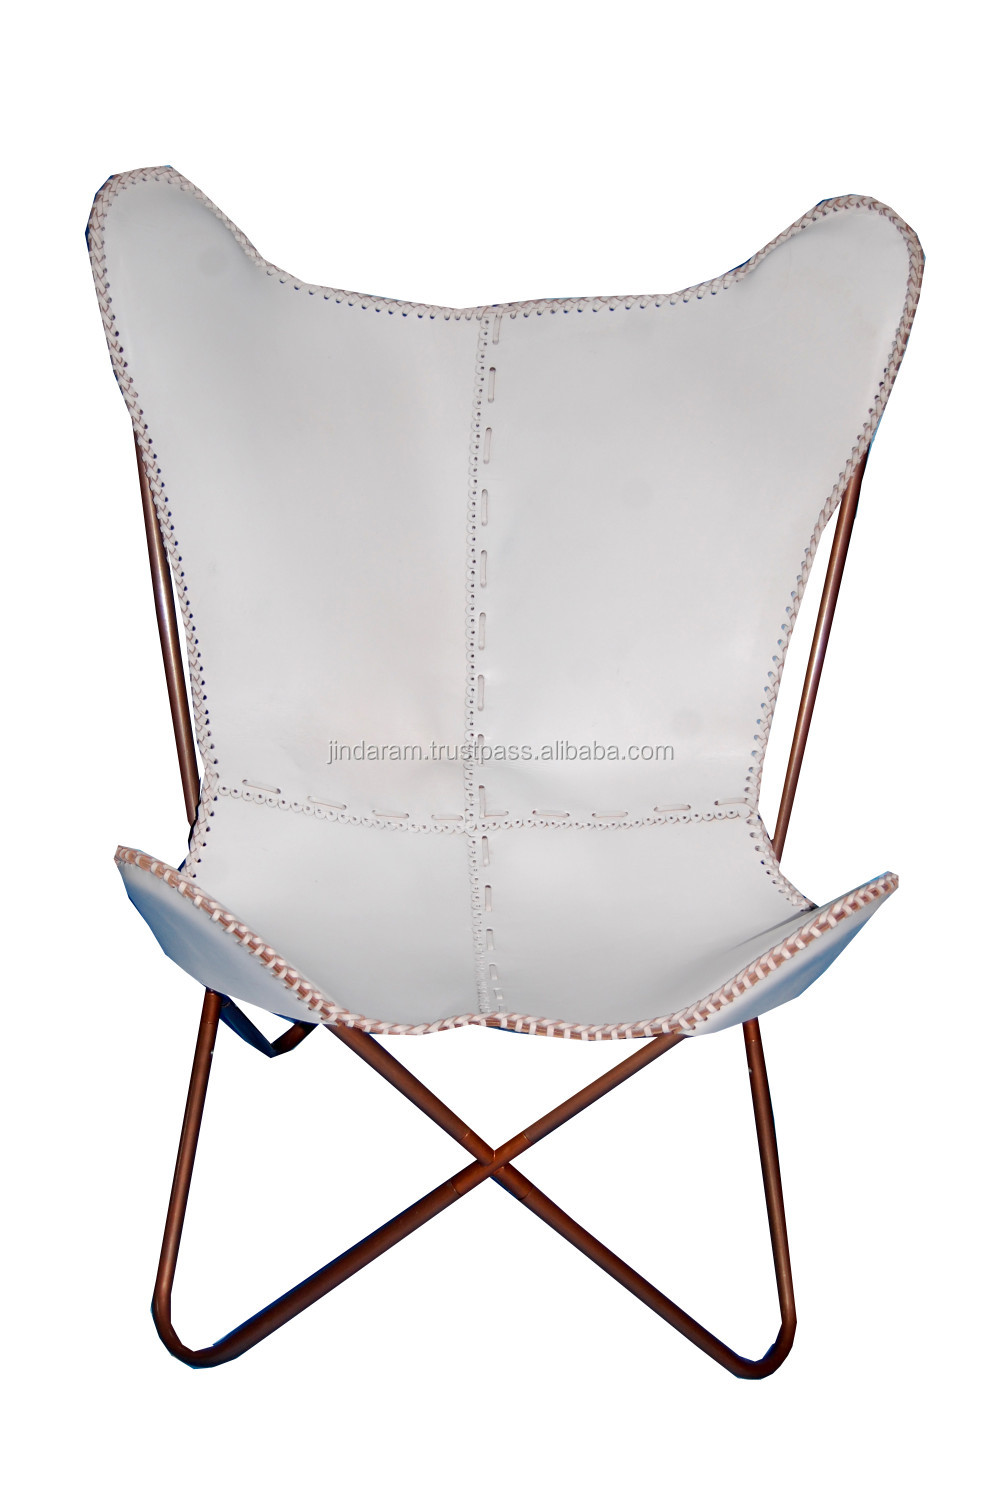 Scandinavian White Leather Butterfly Chair.JPG